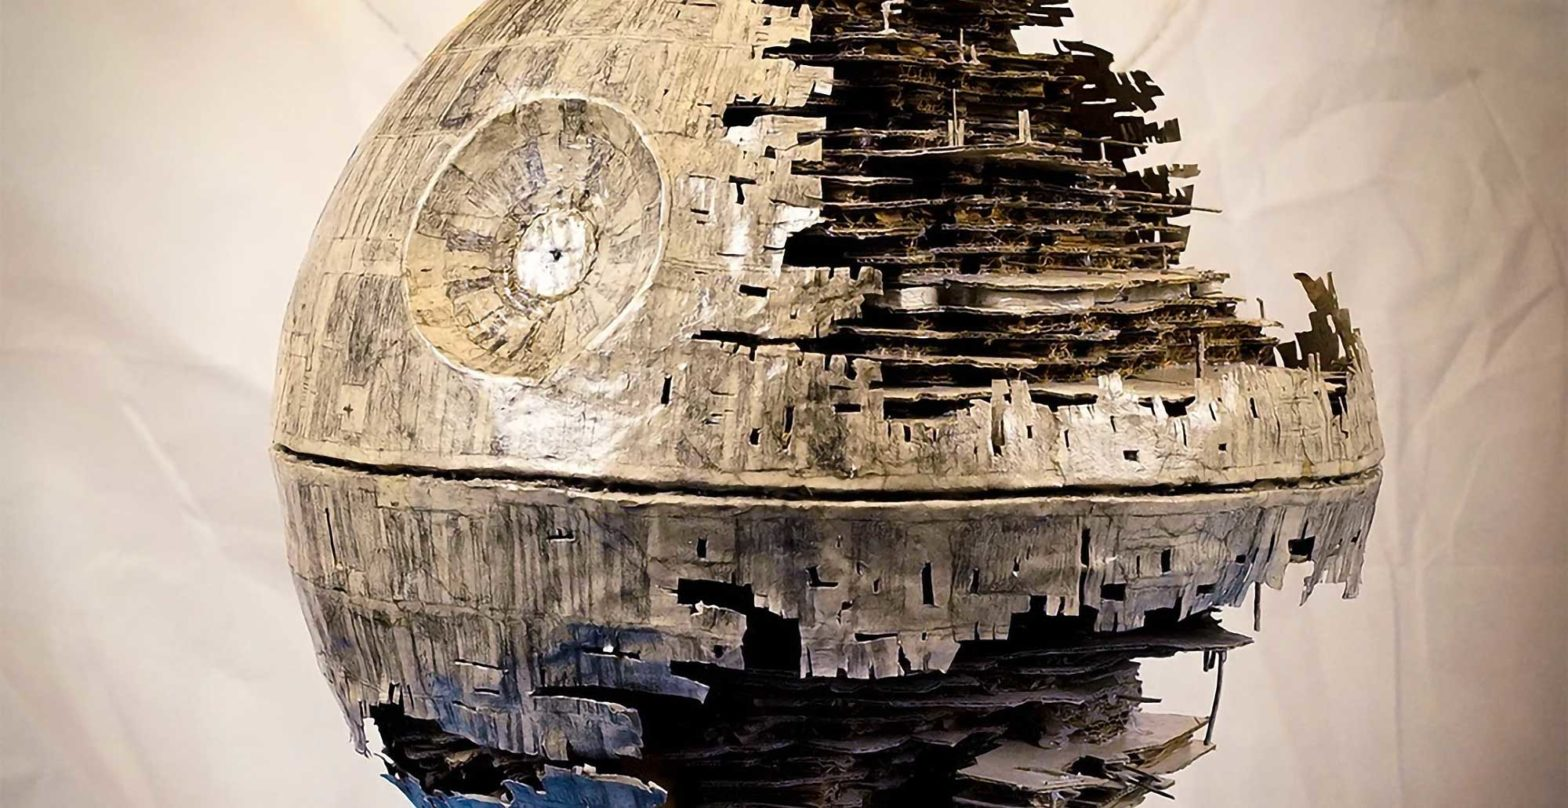 How To Make A Cardboard Death Star II